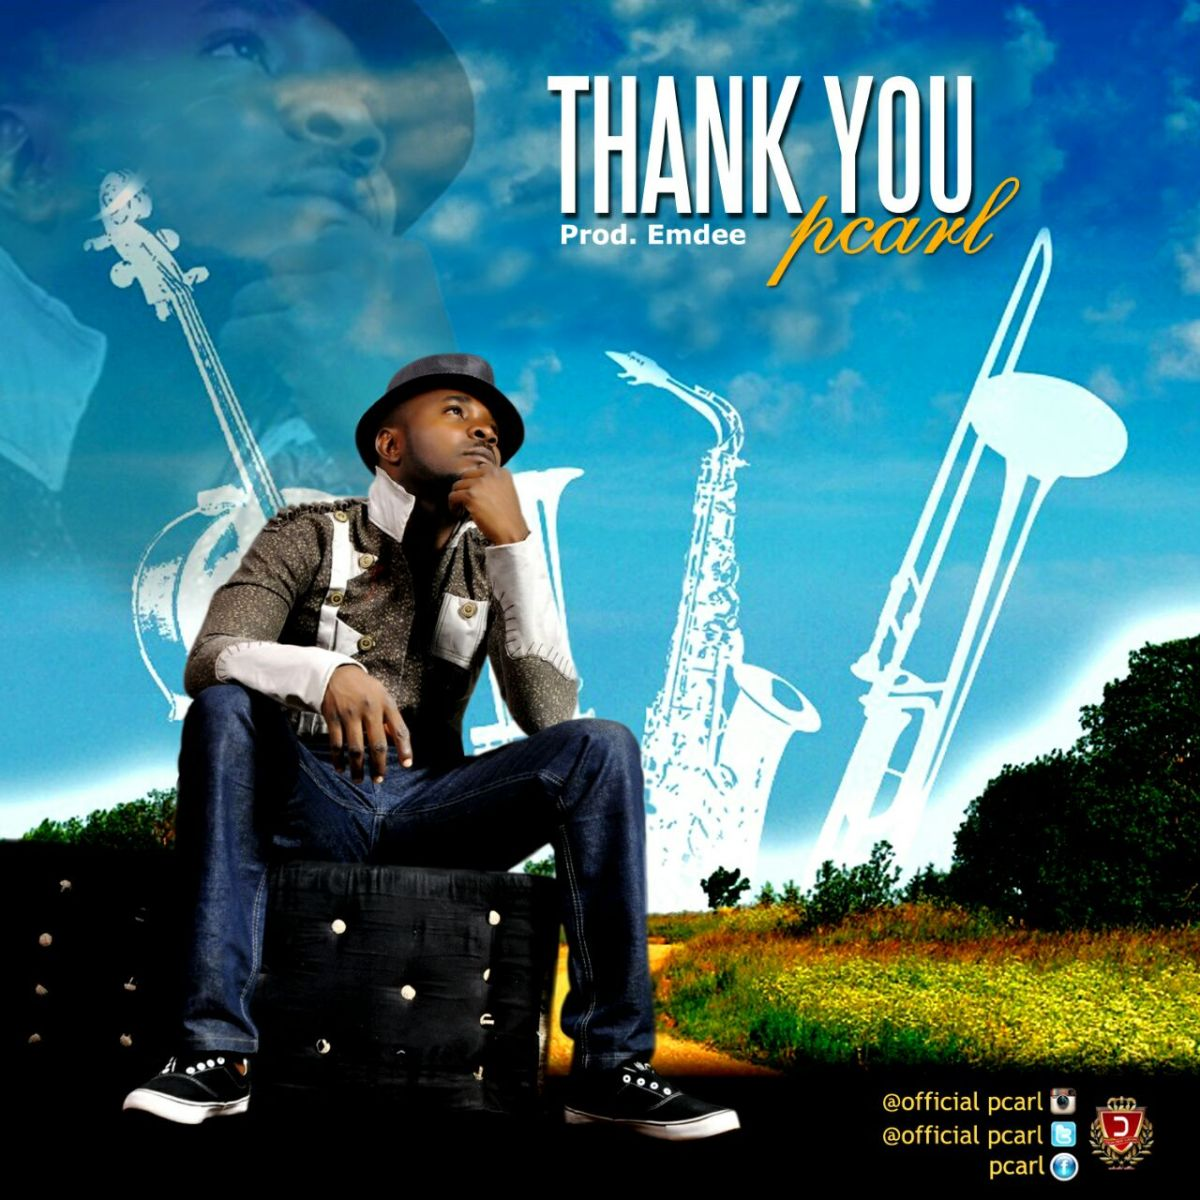 #GospelVibes : ThankYou - Pcarl @officialPcarl || Free Download